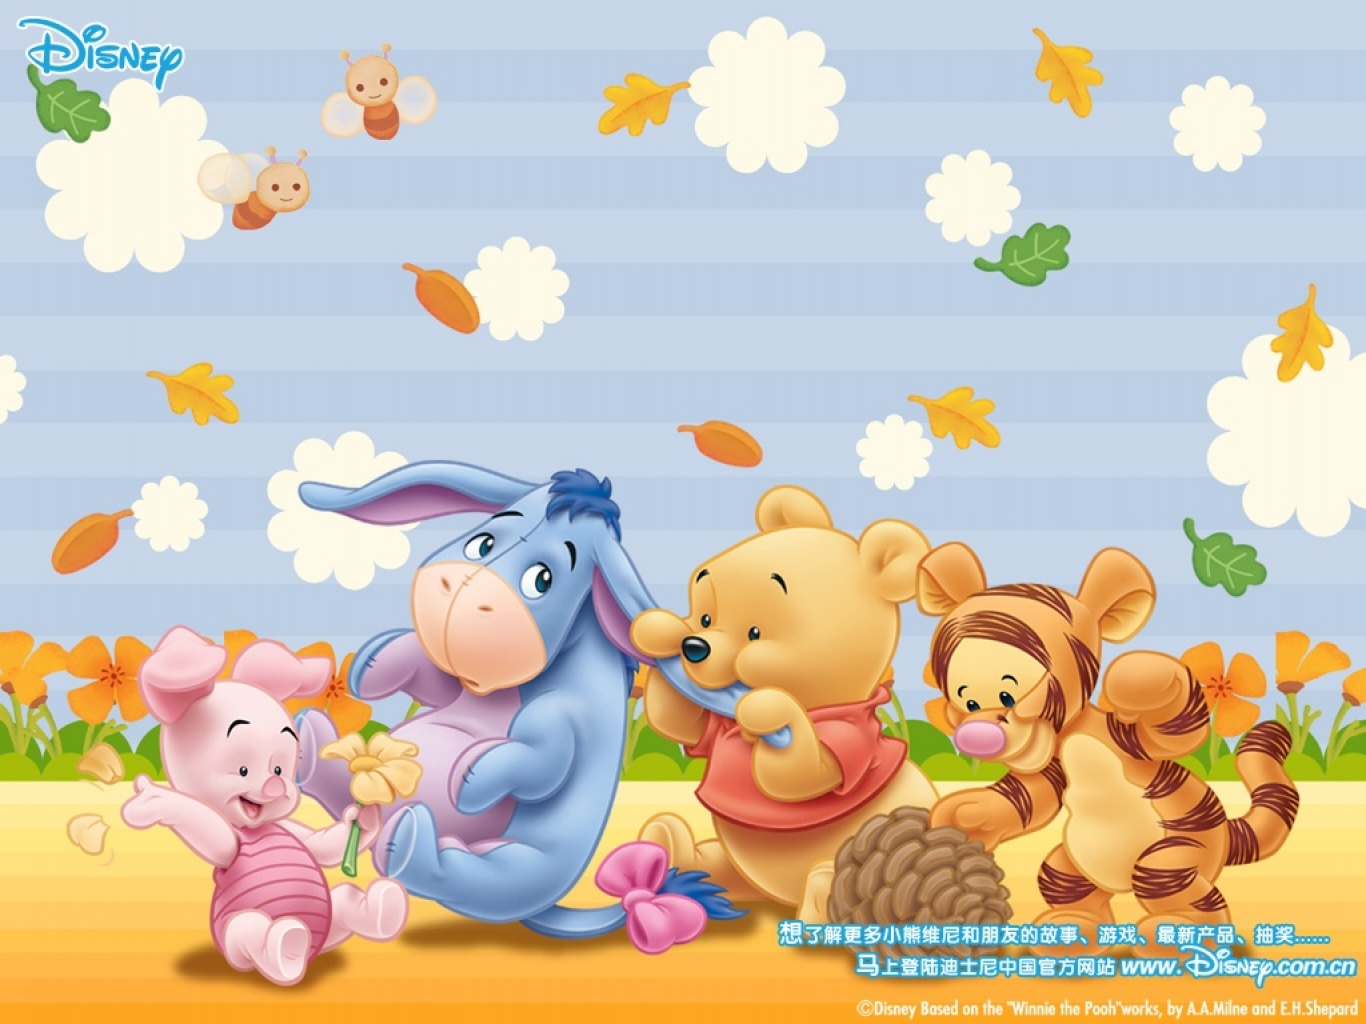 http://1.bp.blogspot.com/-xegQUntxbIw/TjIQuzwAgnI/AAAAAAAAAGA/Vwwid-BVh6Q/s1600/Wallpaper+free+download+Winnie+The+Pooh%252C+Piglet%252C+Eeyore+and+Tigger+baby.jpg